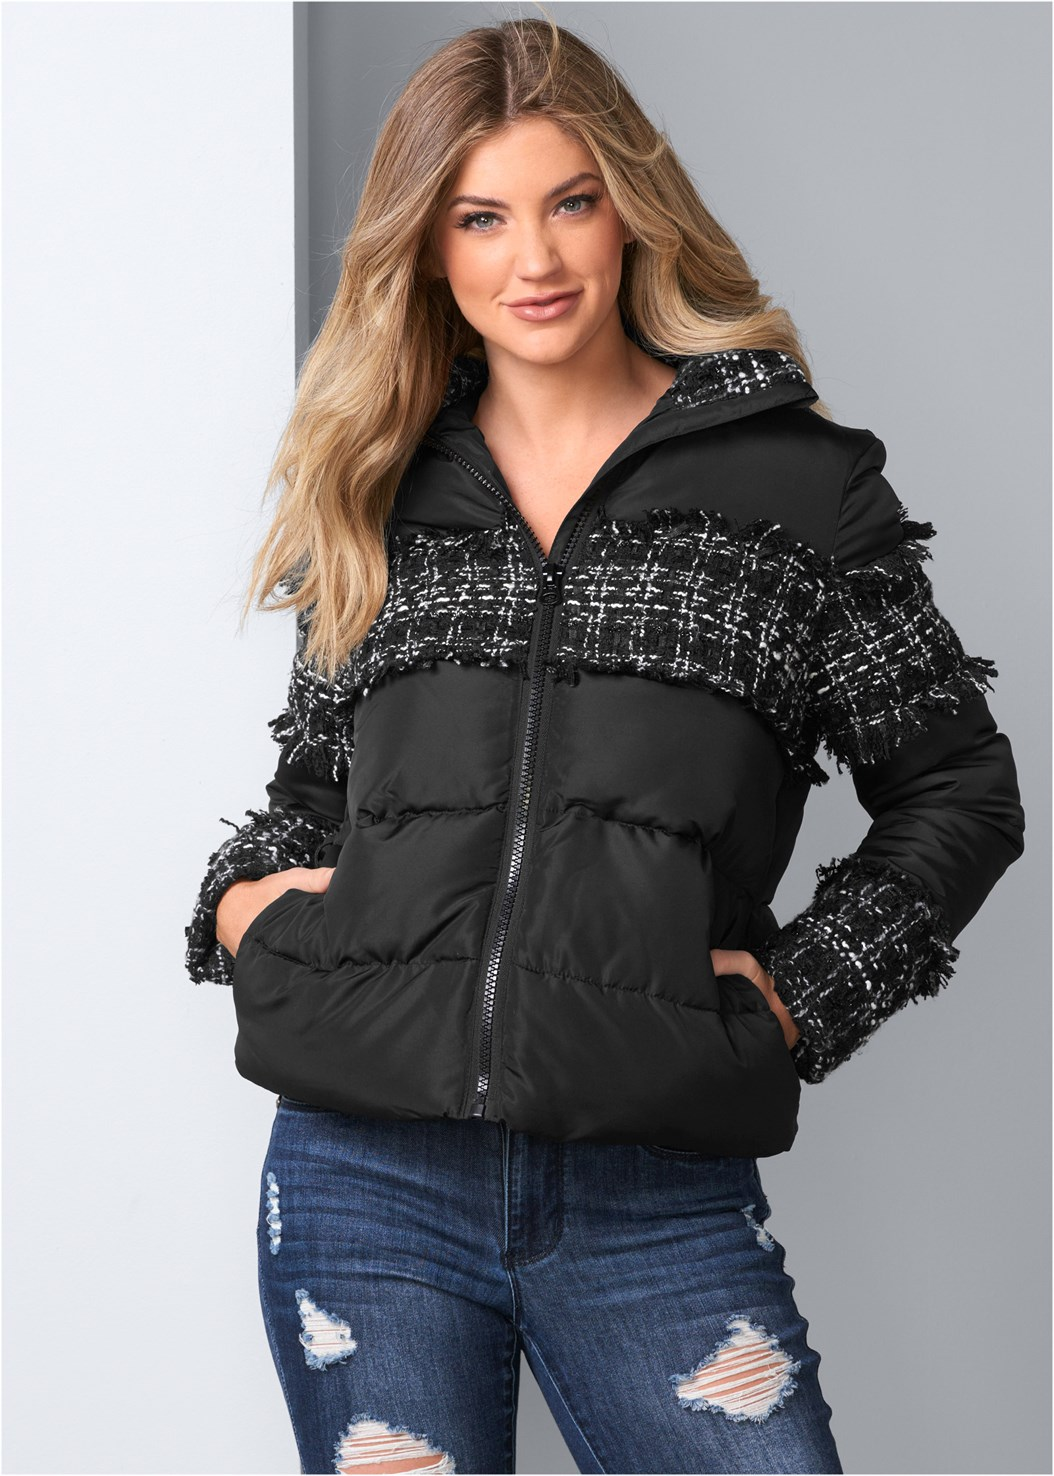 Plaid Detail Puffer Jacket,Ripped Bum Lifter Jeans